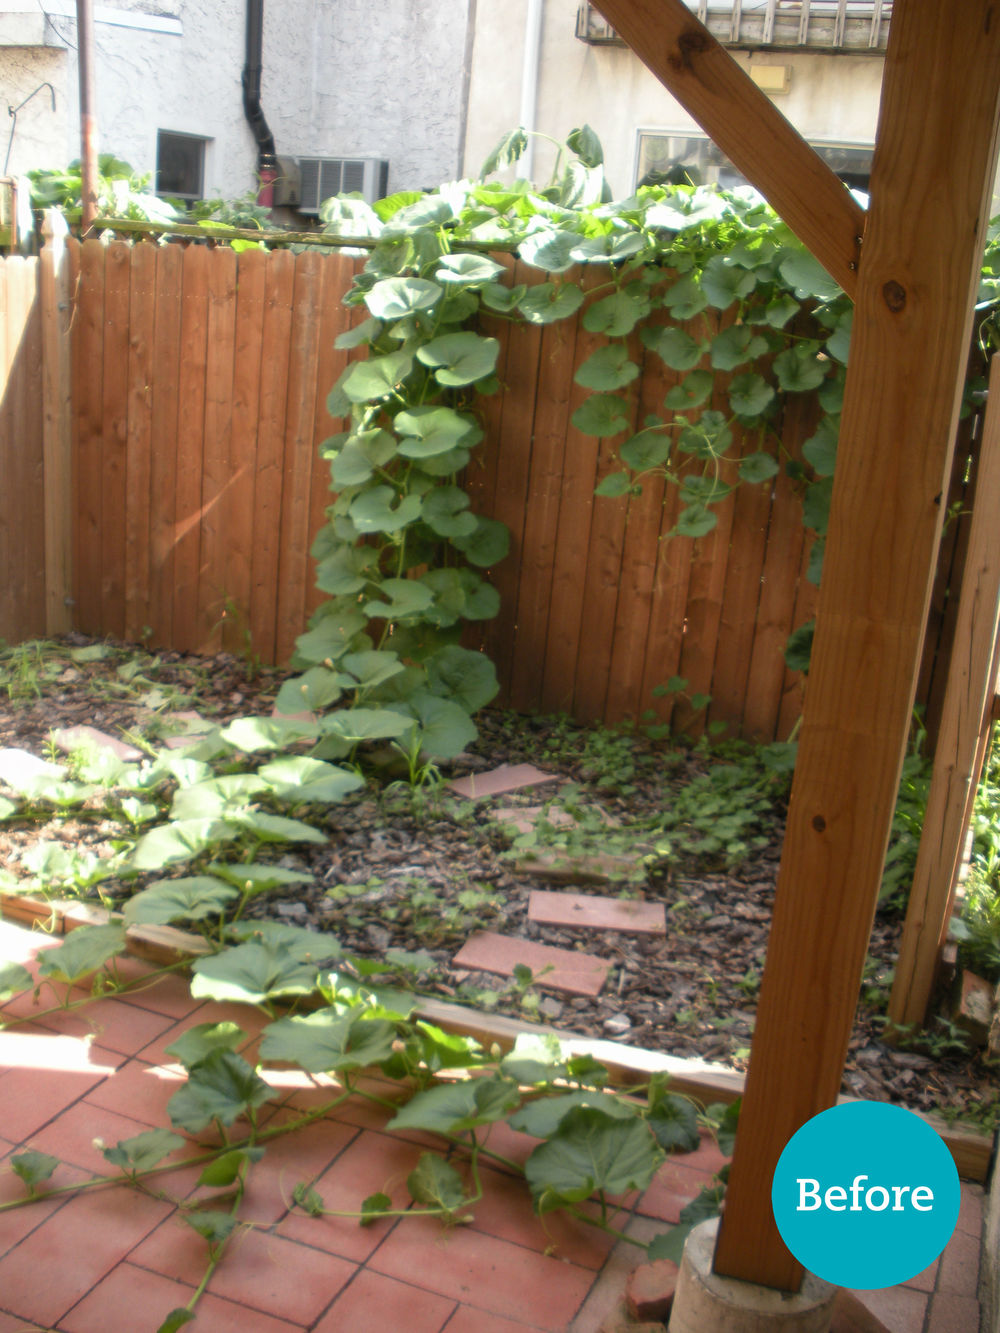 Outdoor terrace with no seating, and neighbor's overgrown plant has taken over!